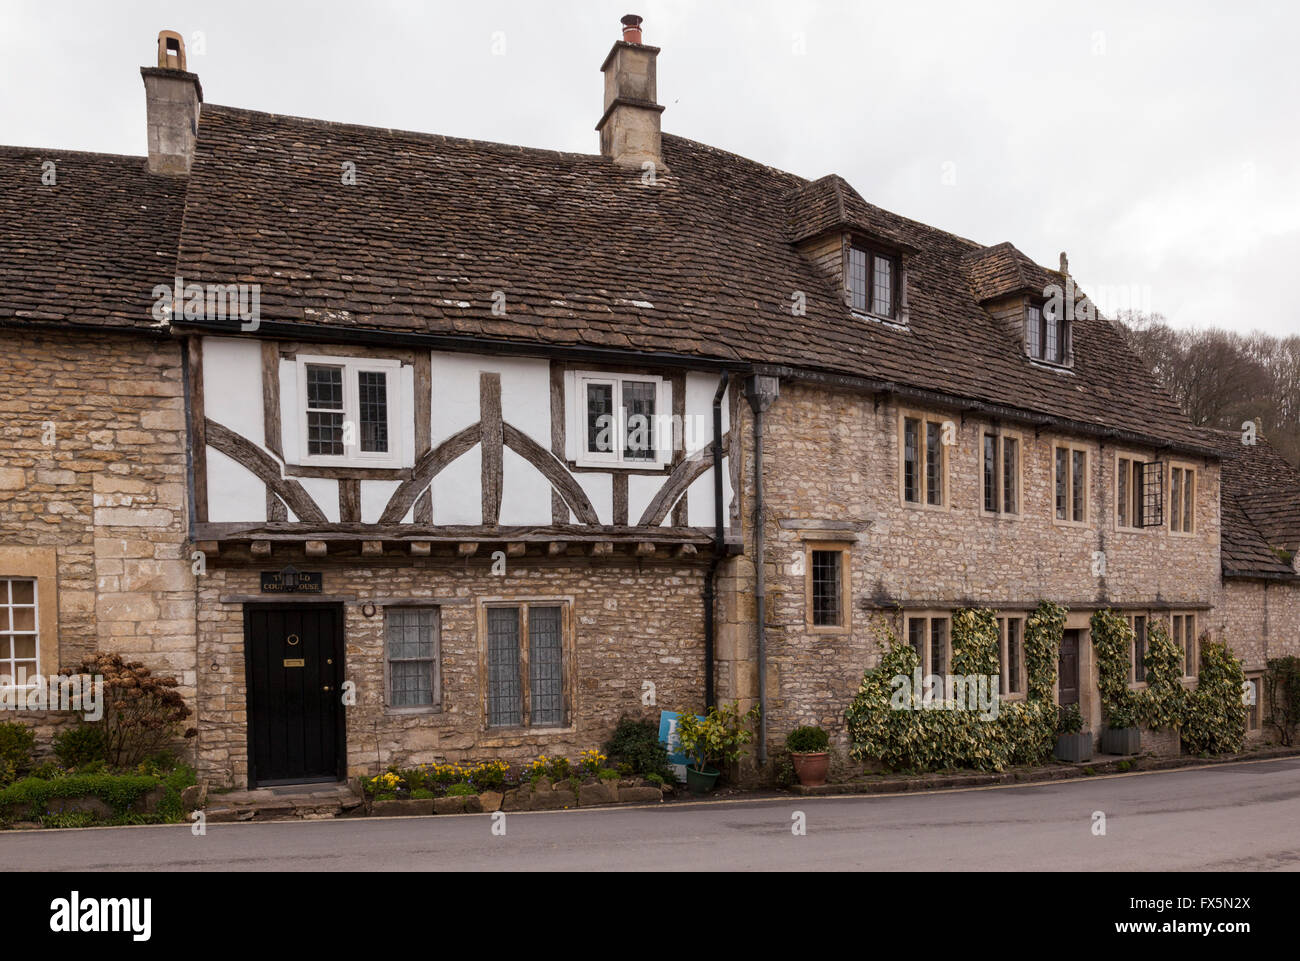 The Old Court House, Market Place, Castle Combe, Wiltshire, England - Stock Image